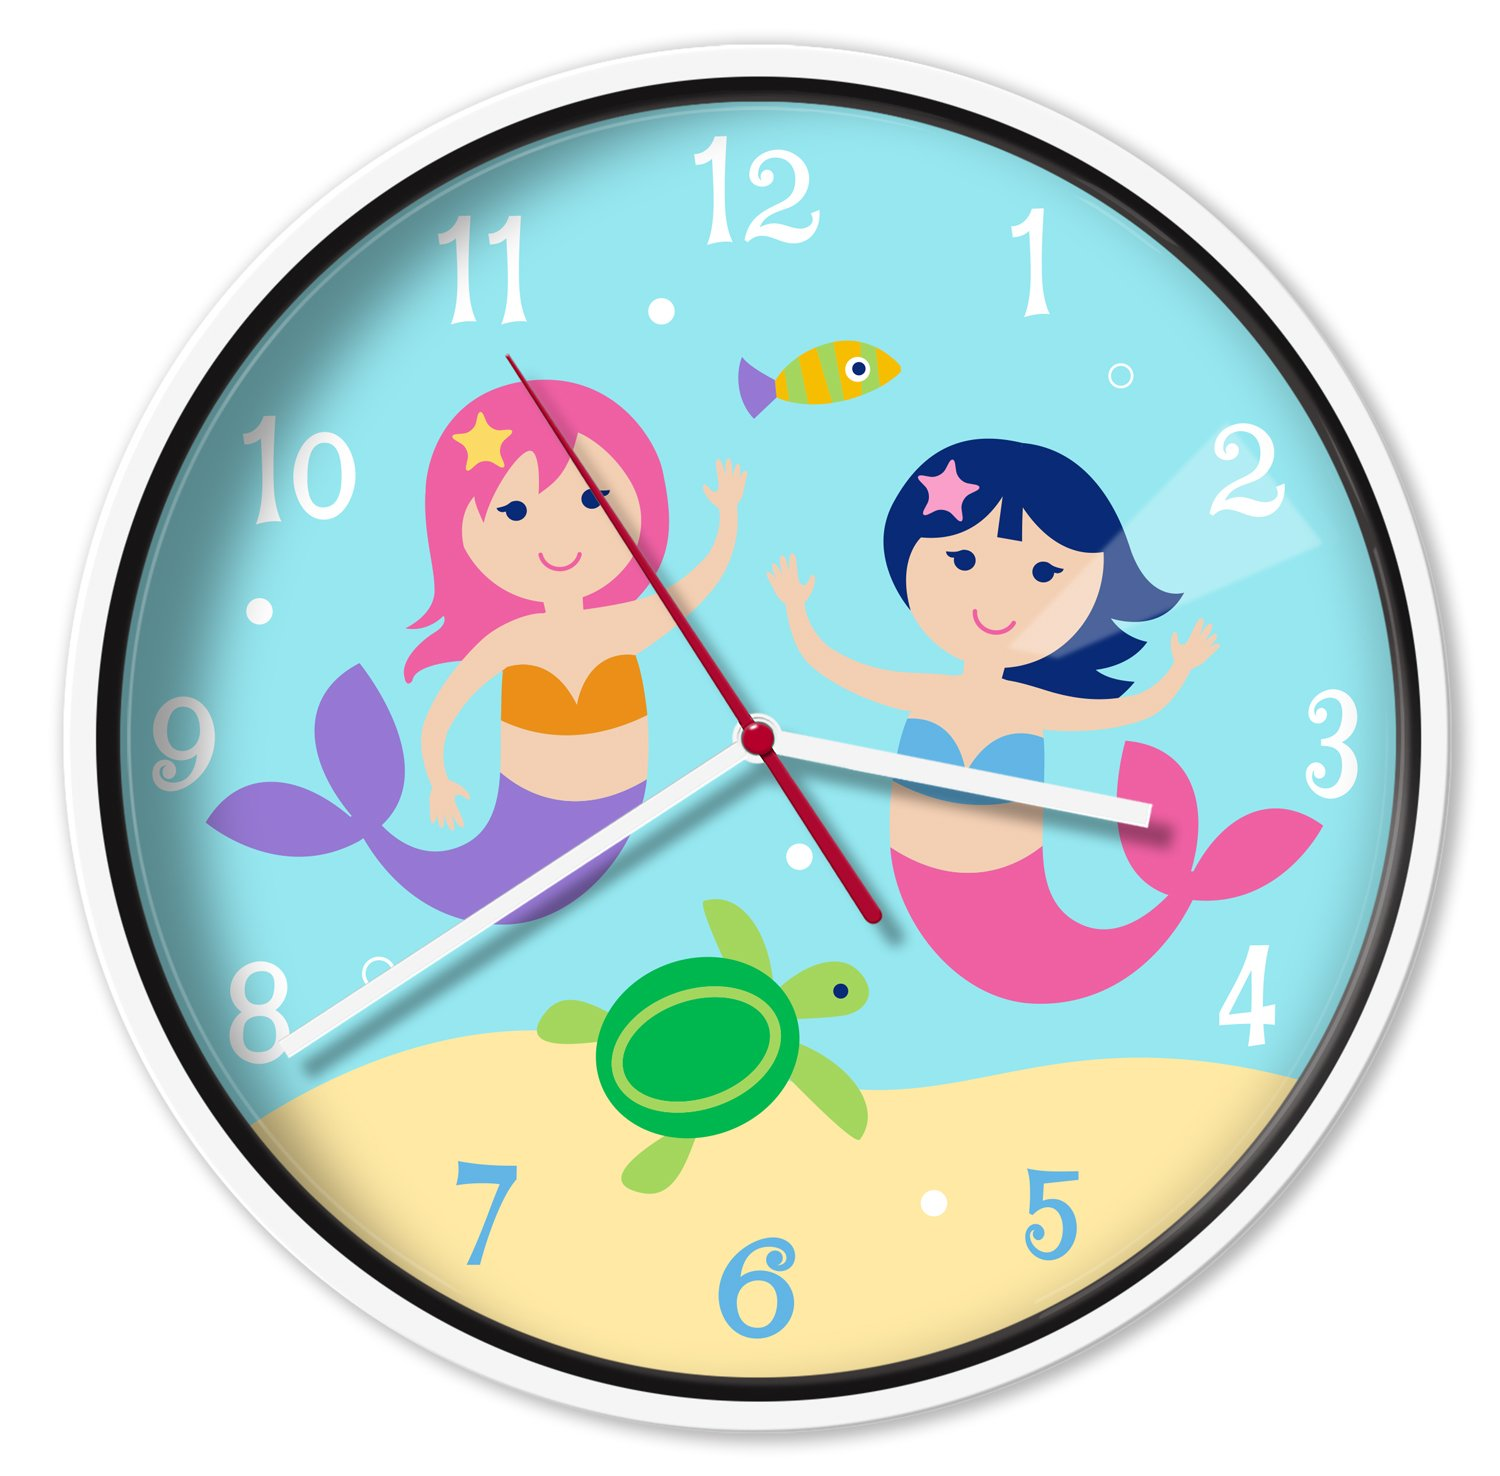 Wildkin Wall Clock, Features Silent Quartz Movement and Durable Plastic Case and Glass Cover, Perfect for Teaching Kids How to Tell Time, Olive Kids Design - Dinosaur Land B06XBM16KD Mermaids